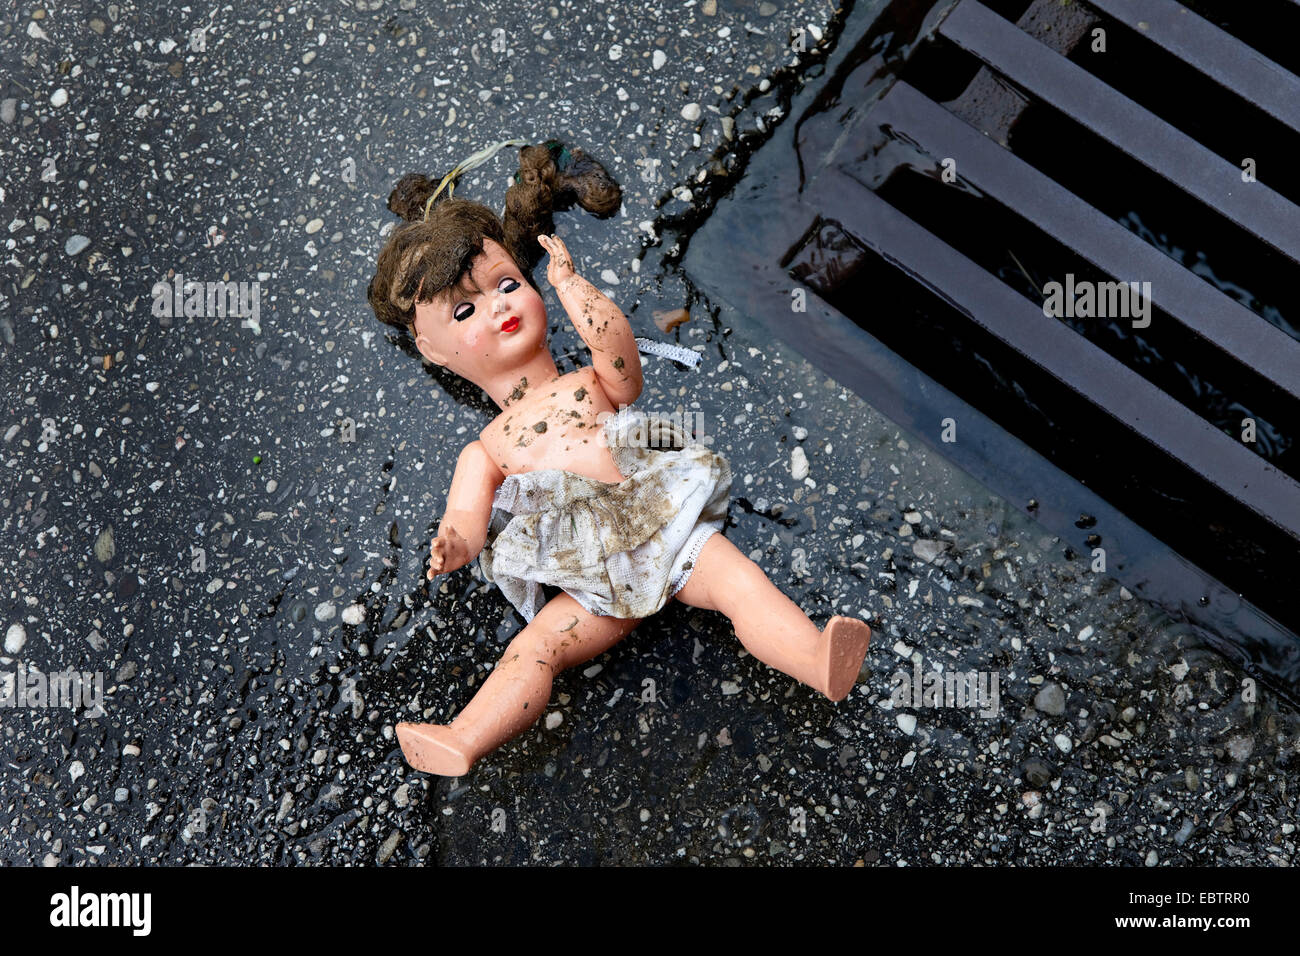 doll lying on a street, symbol of mistreatment and abuse of children - Stock Image